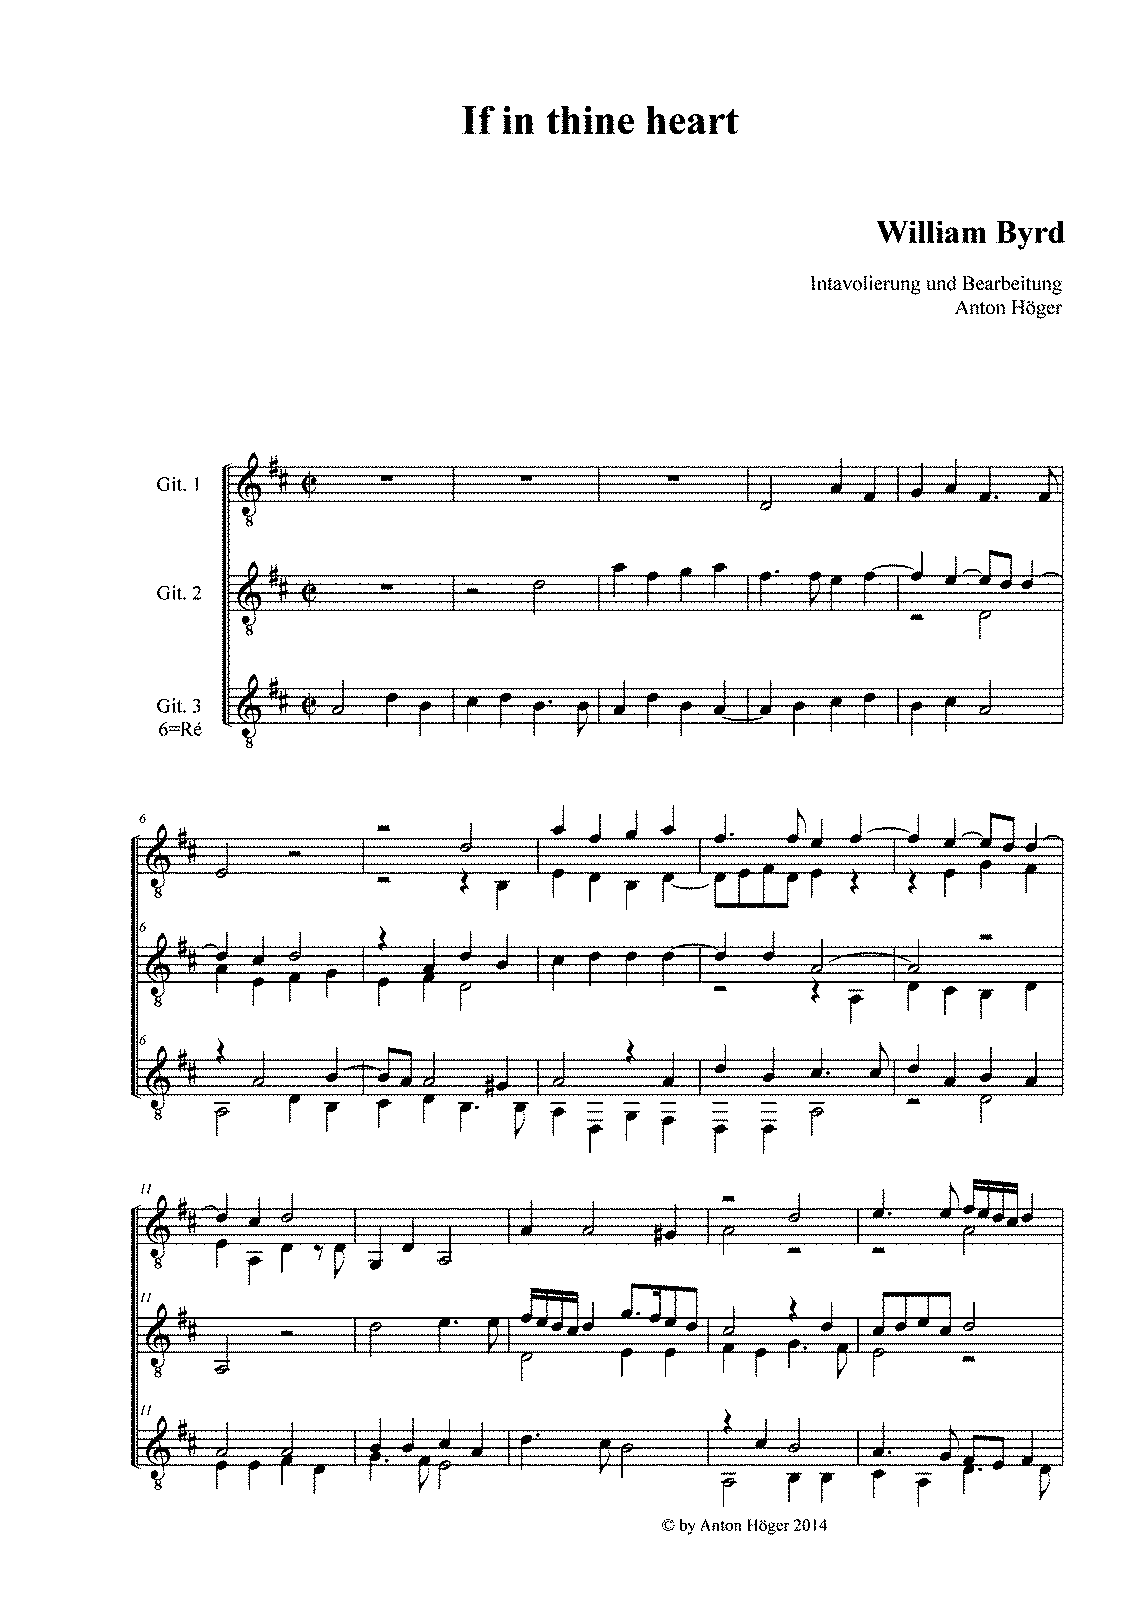 PMLP436397-Byrd - If in thine heart -3Git.pdf